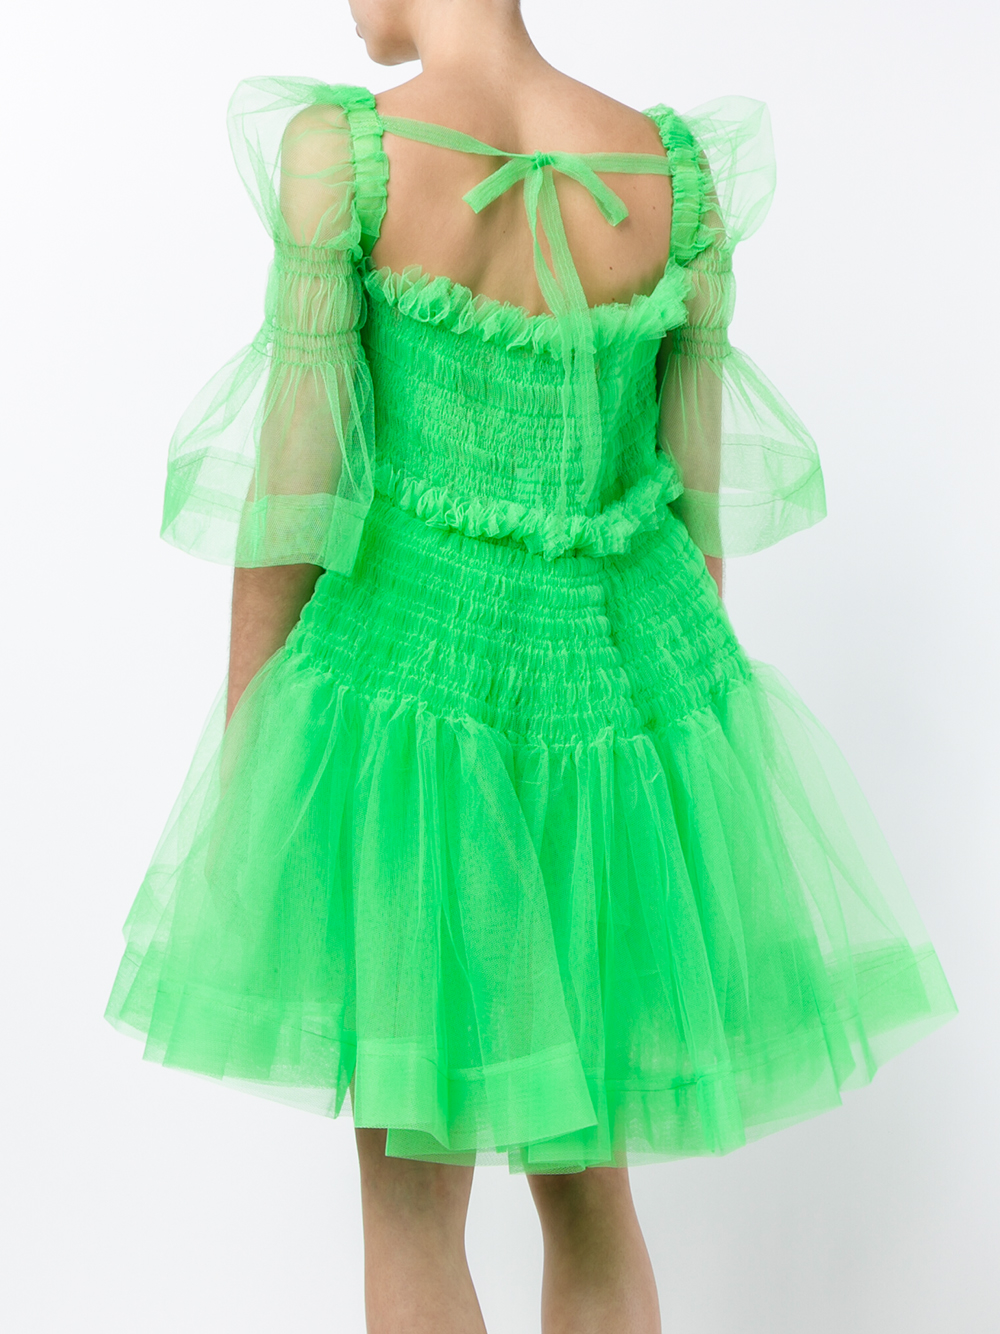 Lyst - Molly Goddard Sophie Tulle Mini Dress in Green